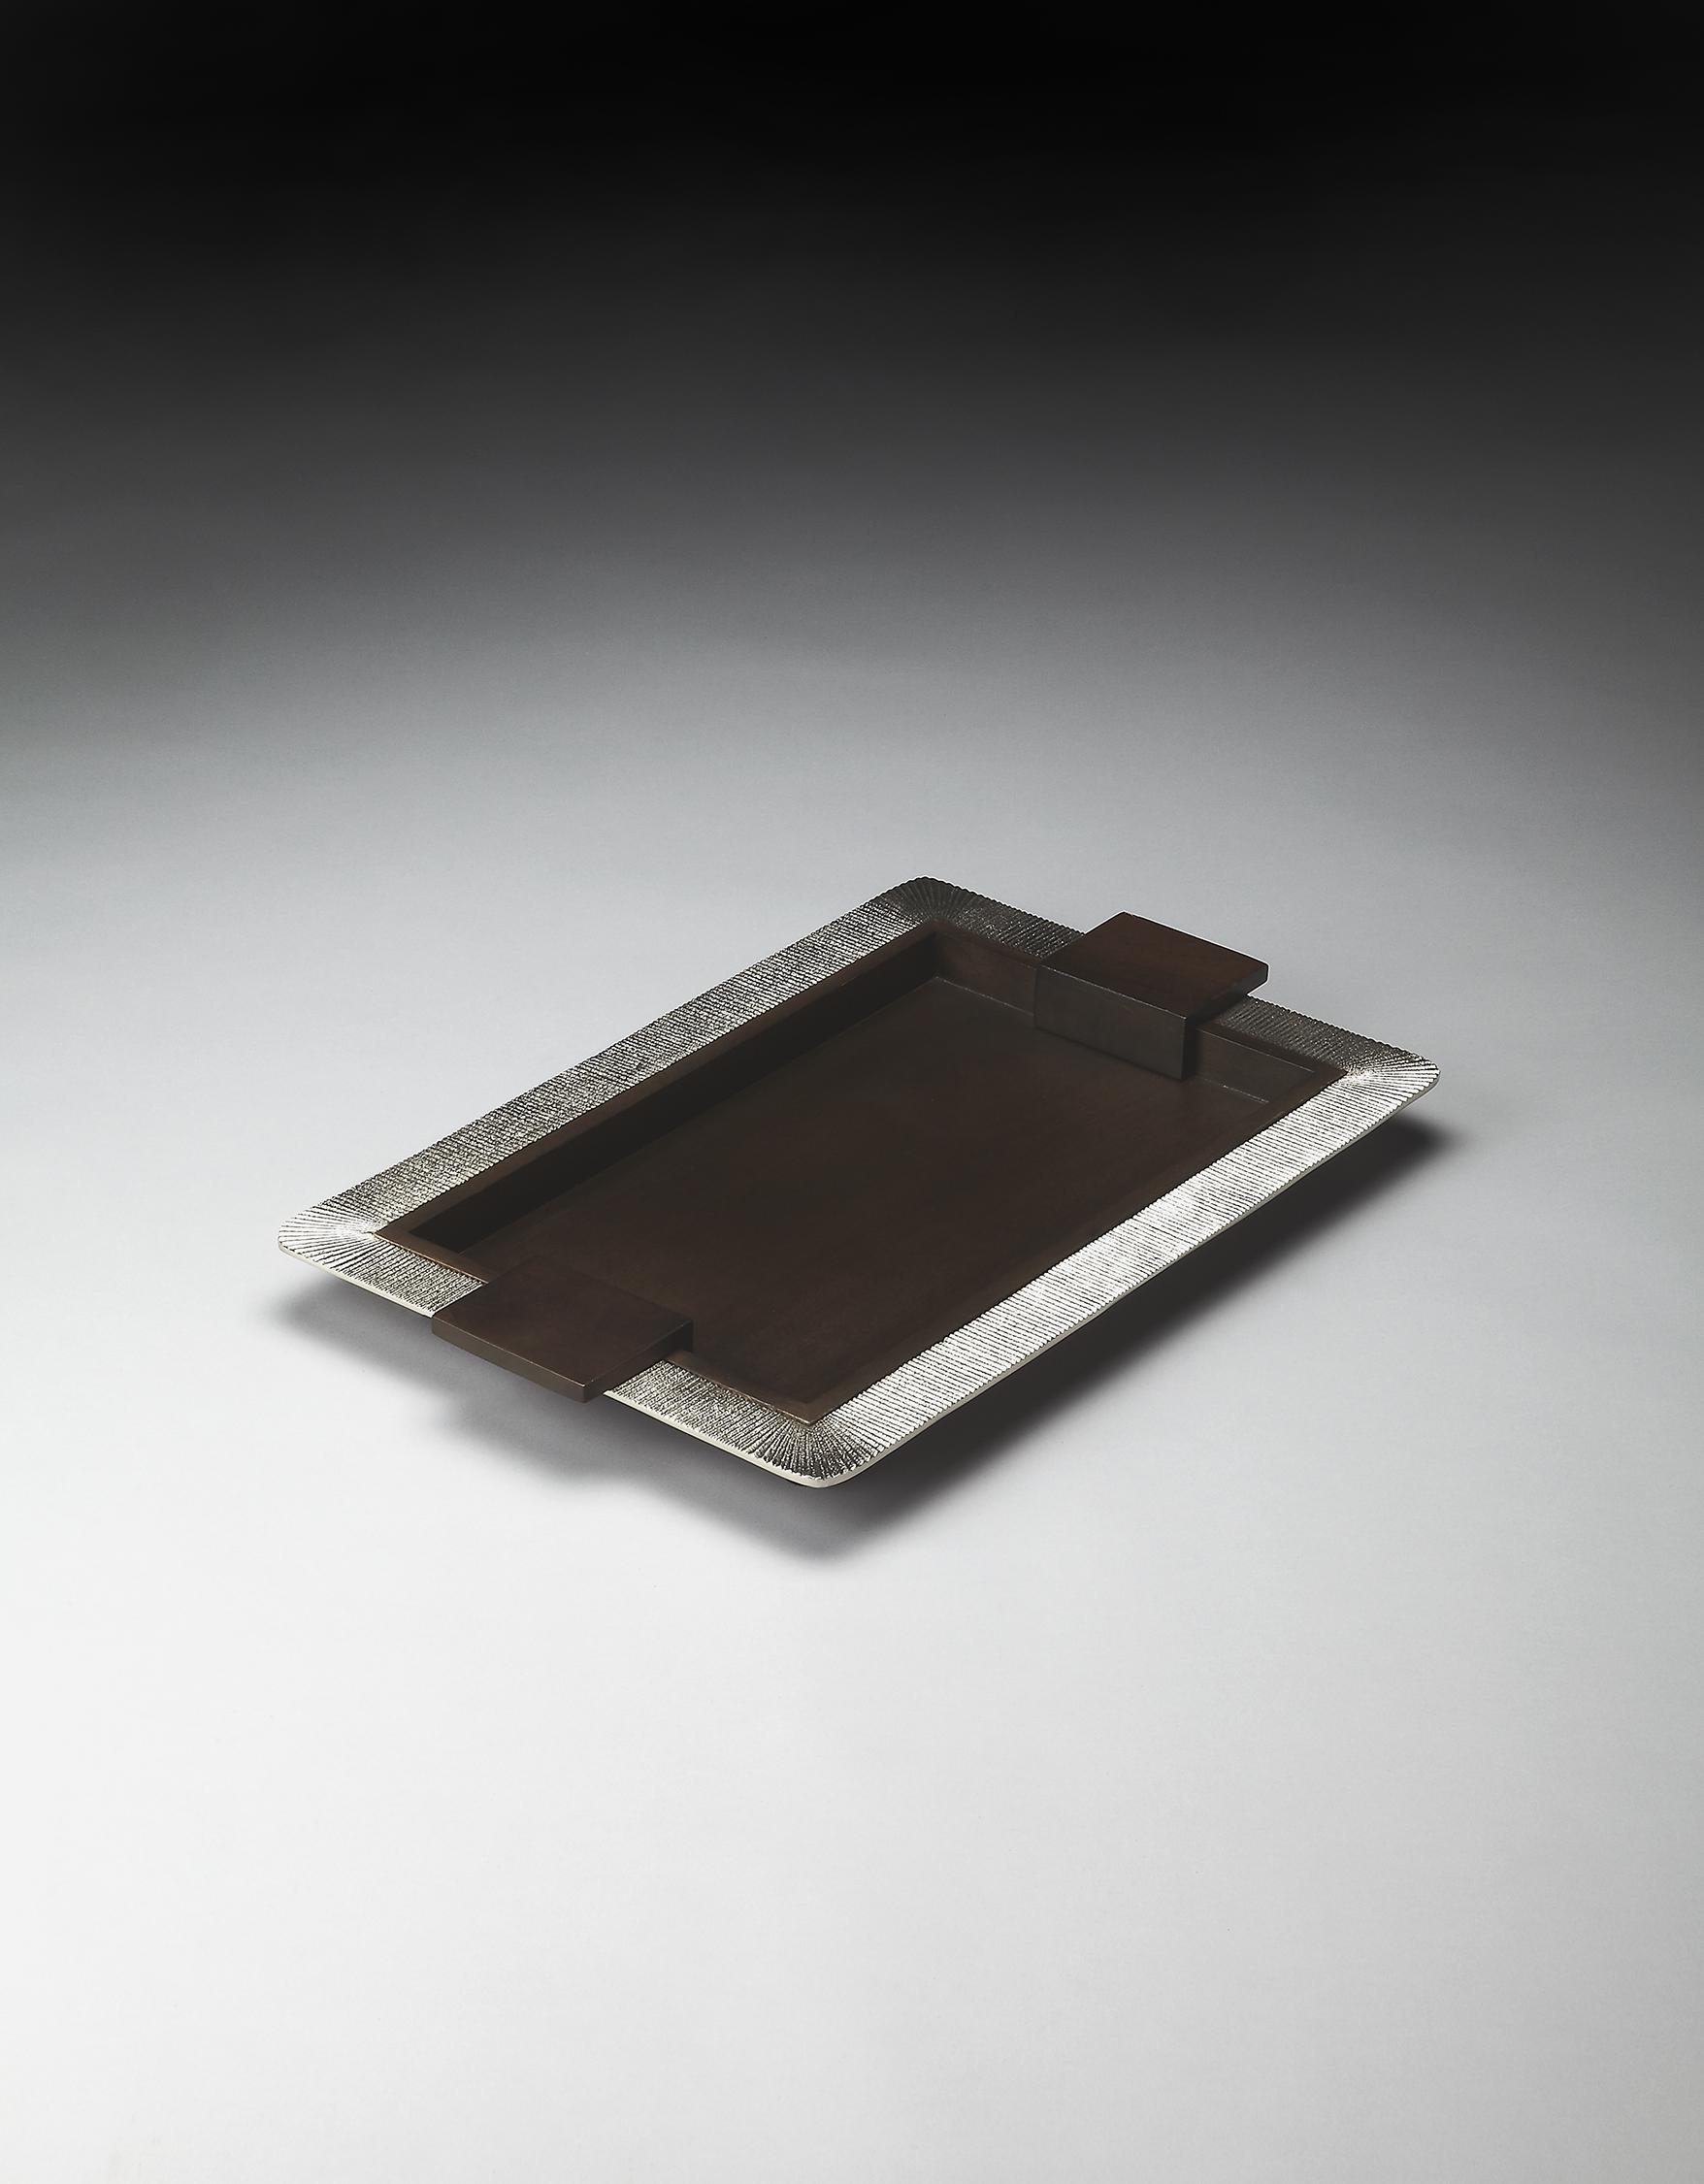 Butler Specialty Company Hors D'oeuvres Serving Tray - Item Number: 4254016